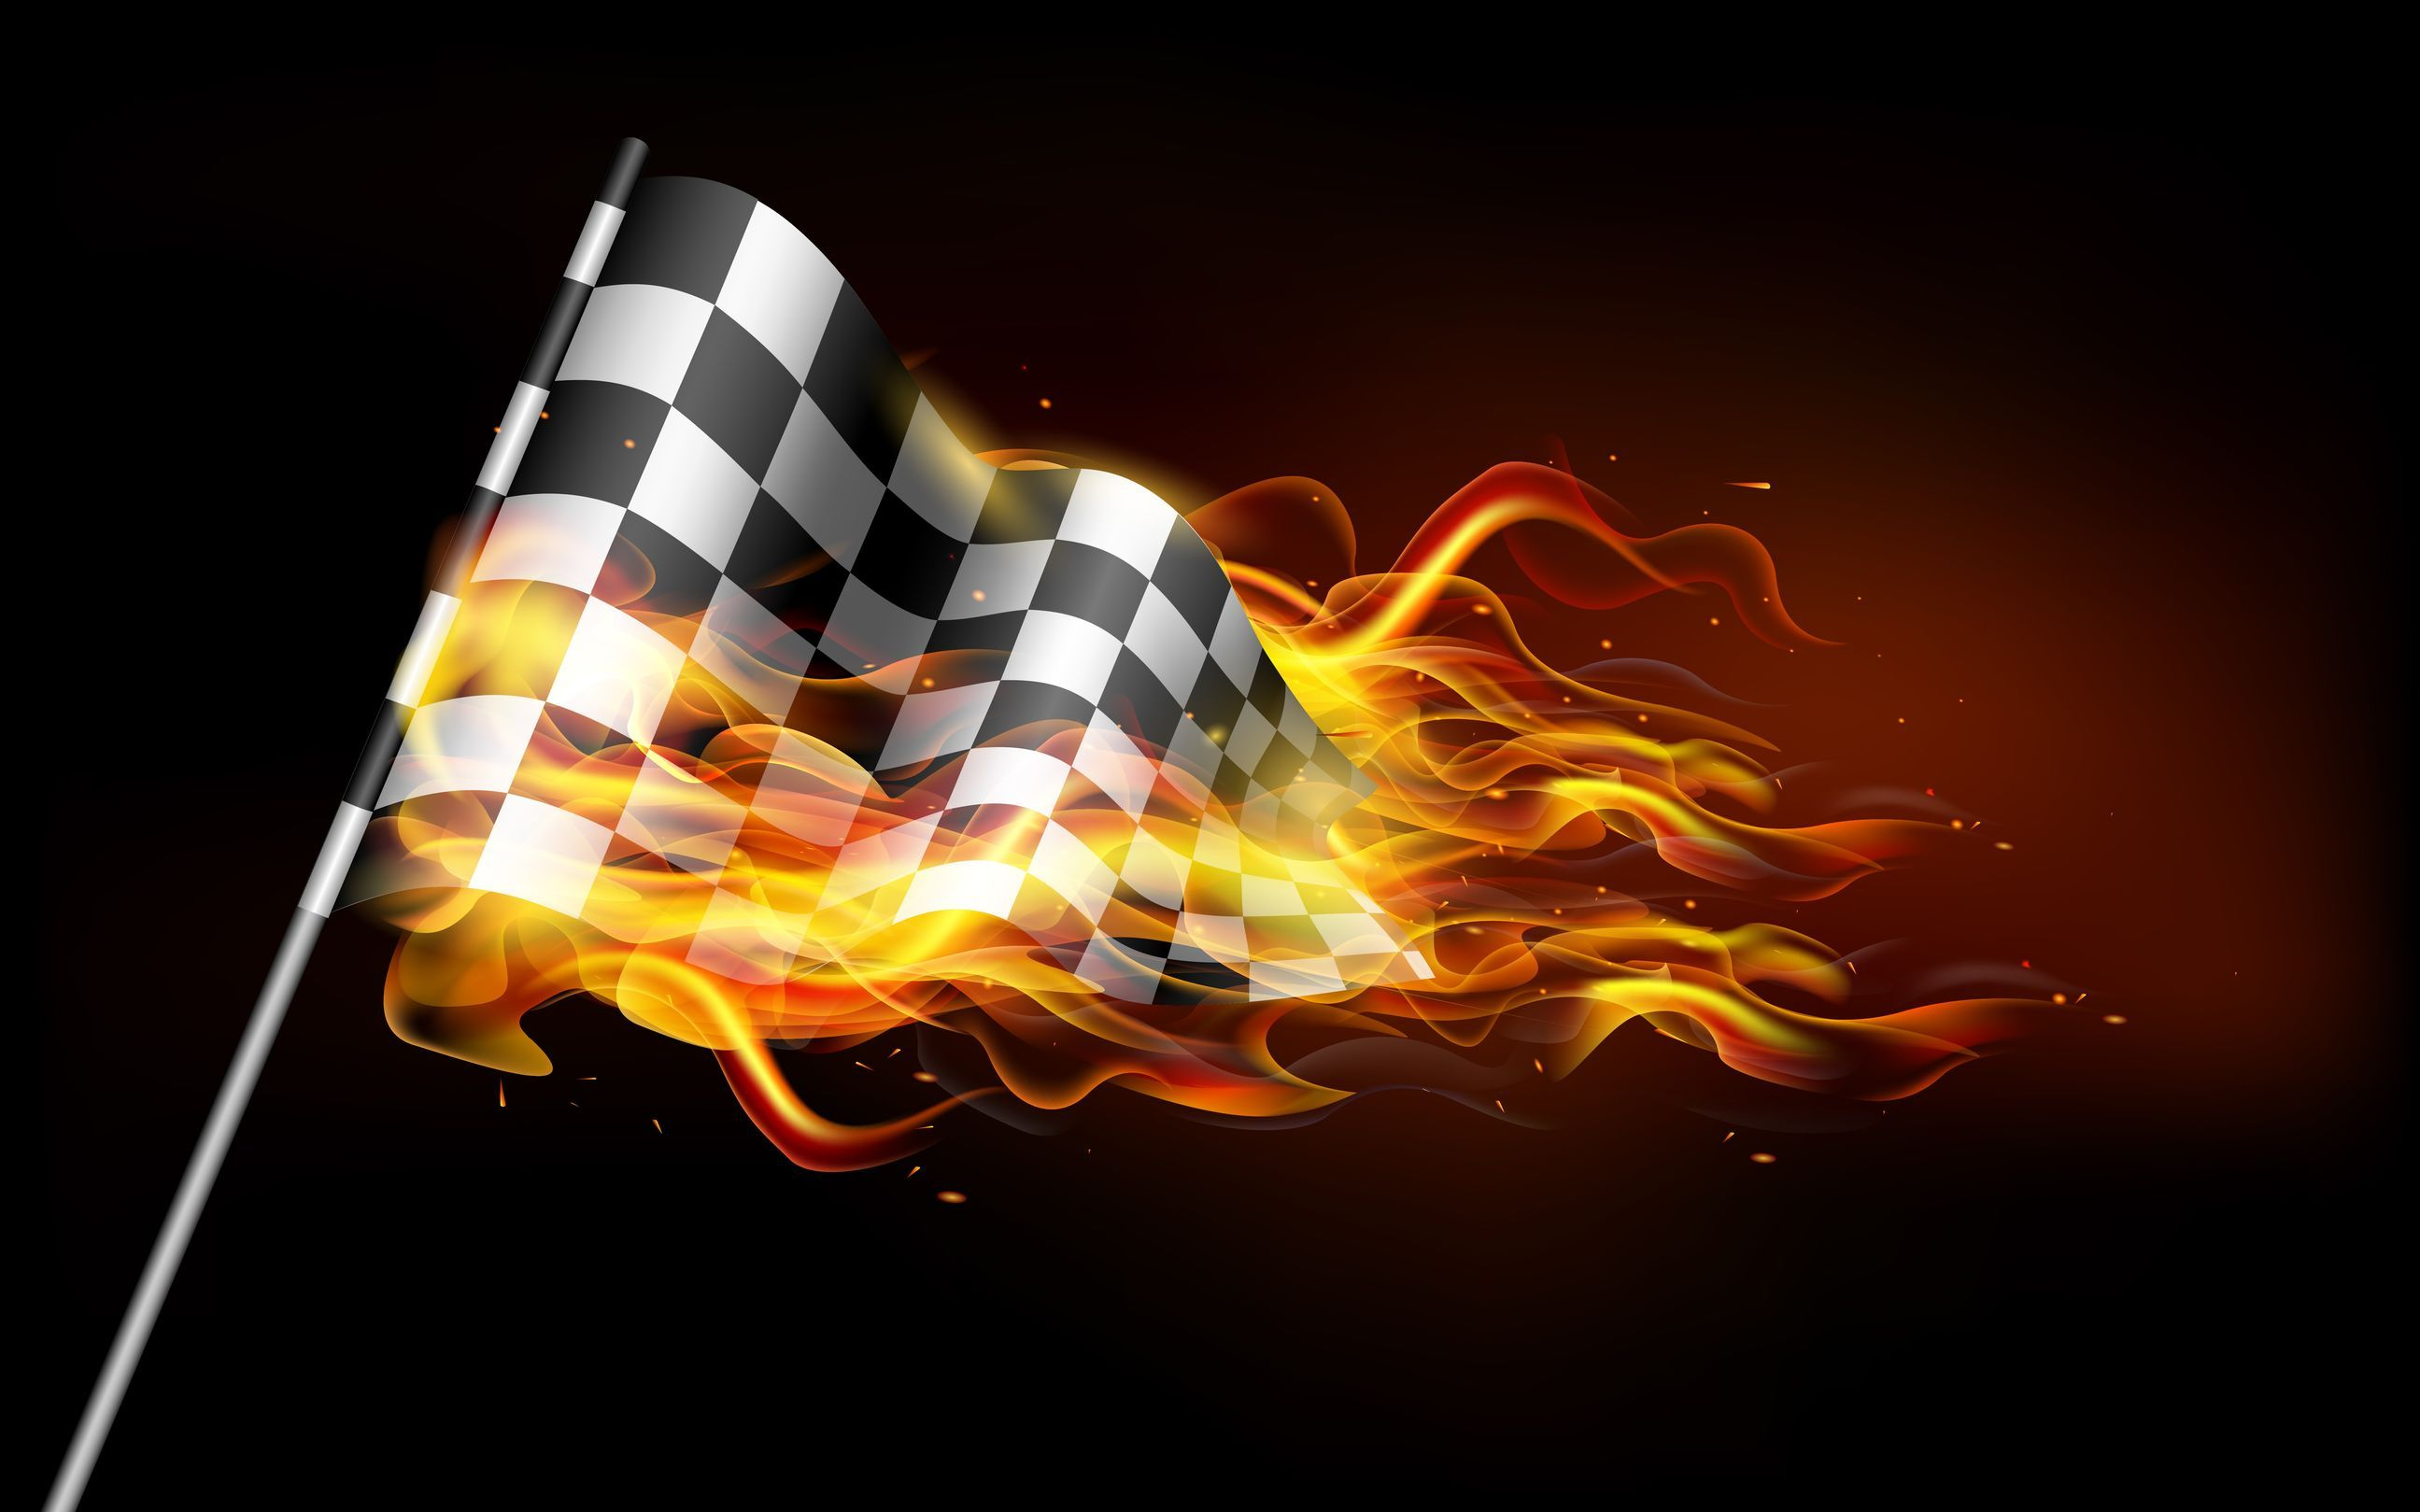 Aesthetic Checkered Flame Wallpaper